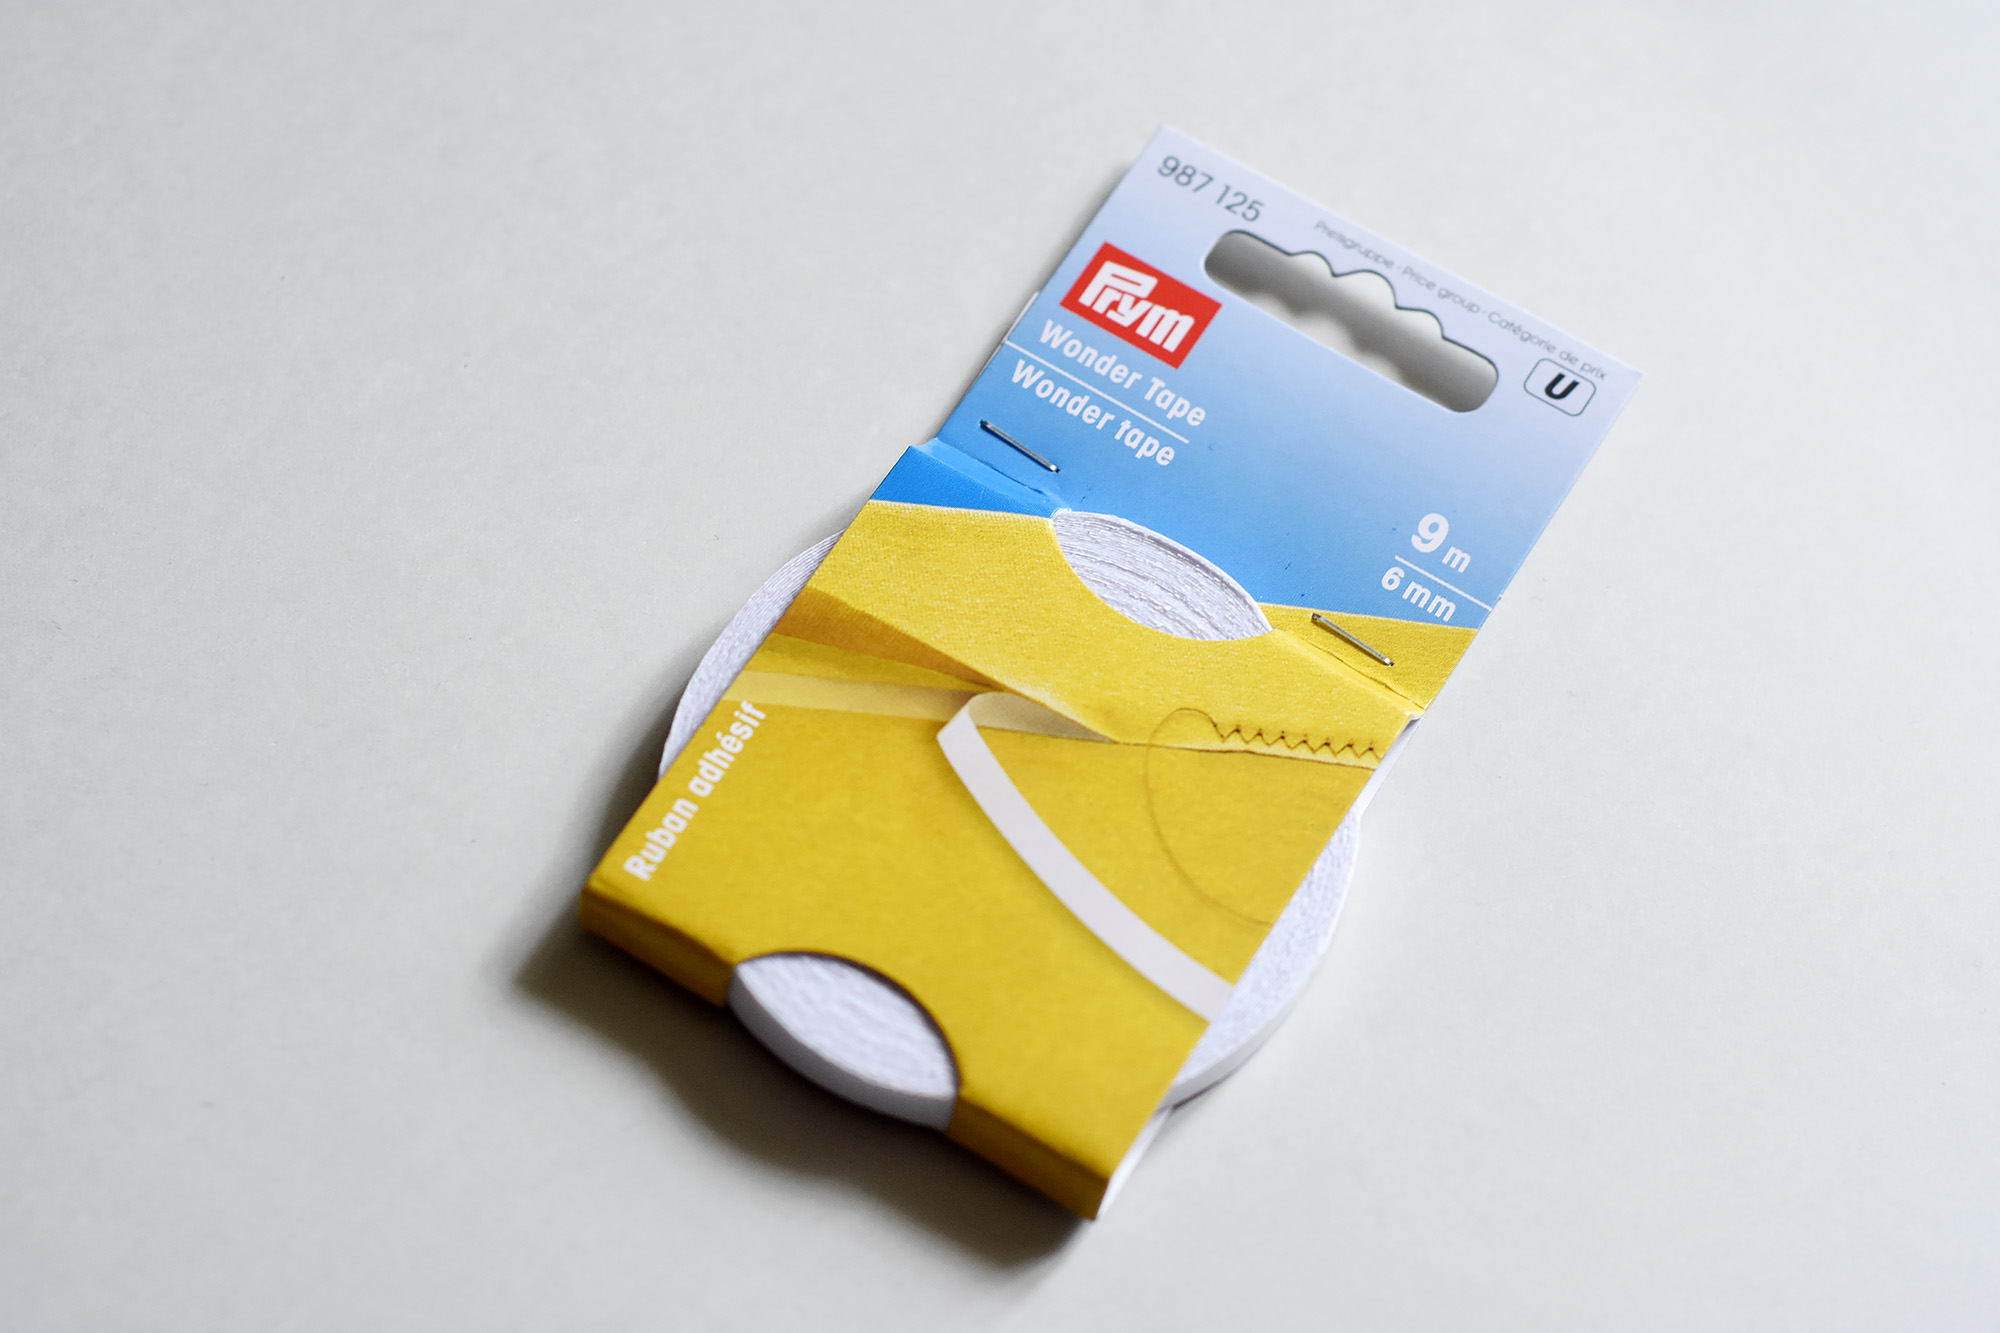 Using Prym double sided tape for waistbands